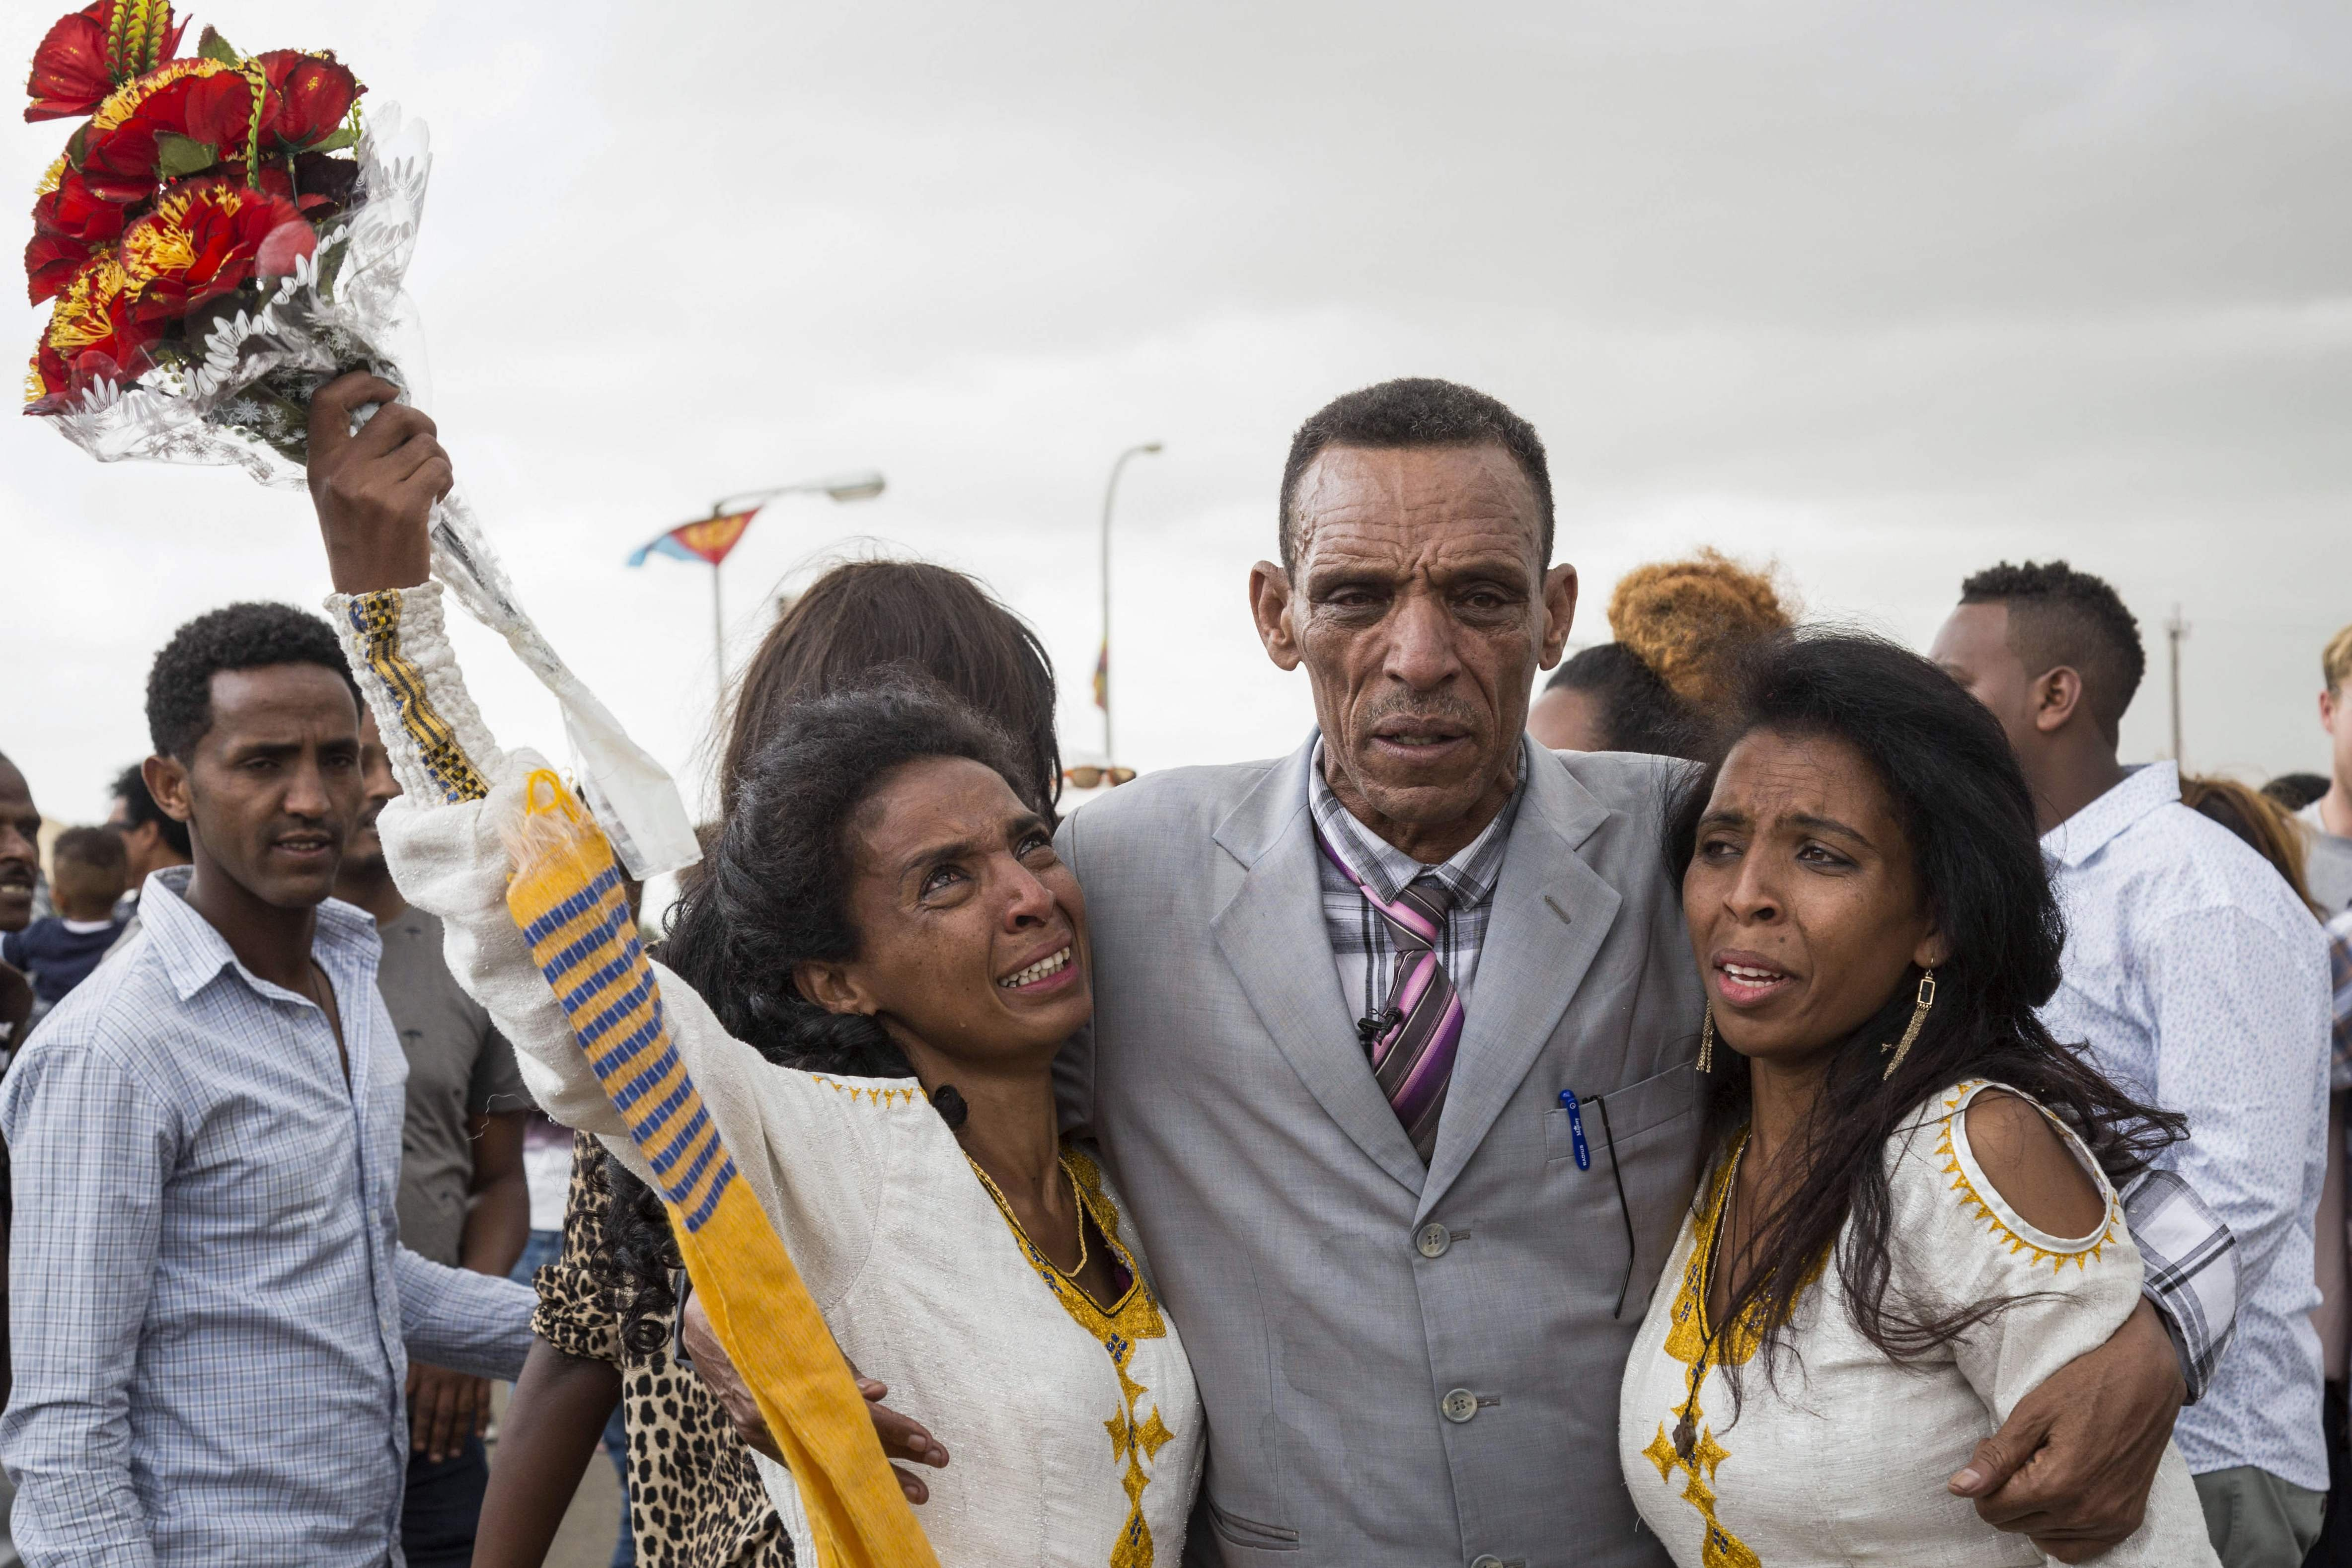 Azmera Addisalem and Danait Addisalem get emotional as they see again their father (who is an Ethiopian journalist) for the first time in 20 years, upon his arrival at the Asmara International airport, on July 18, 2018.